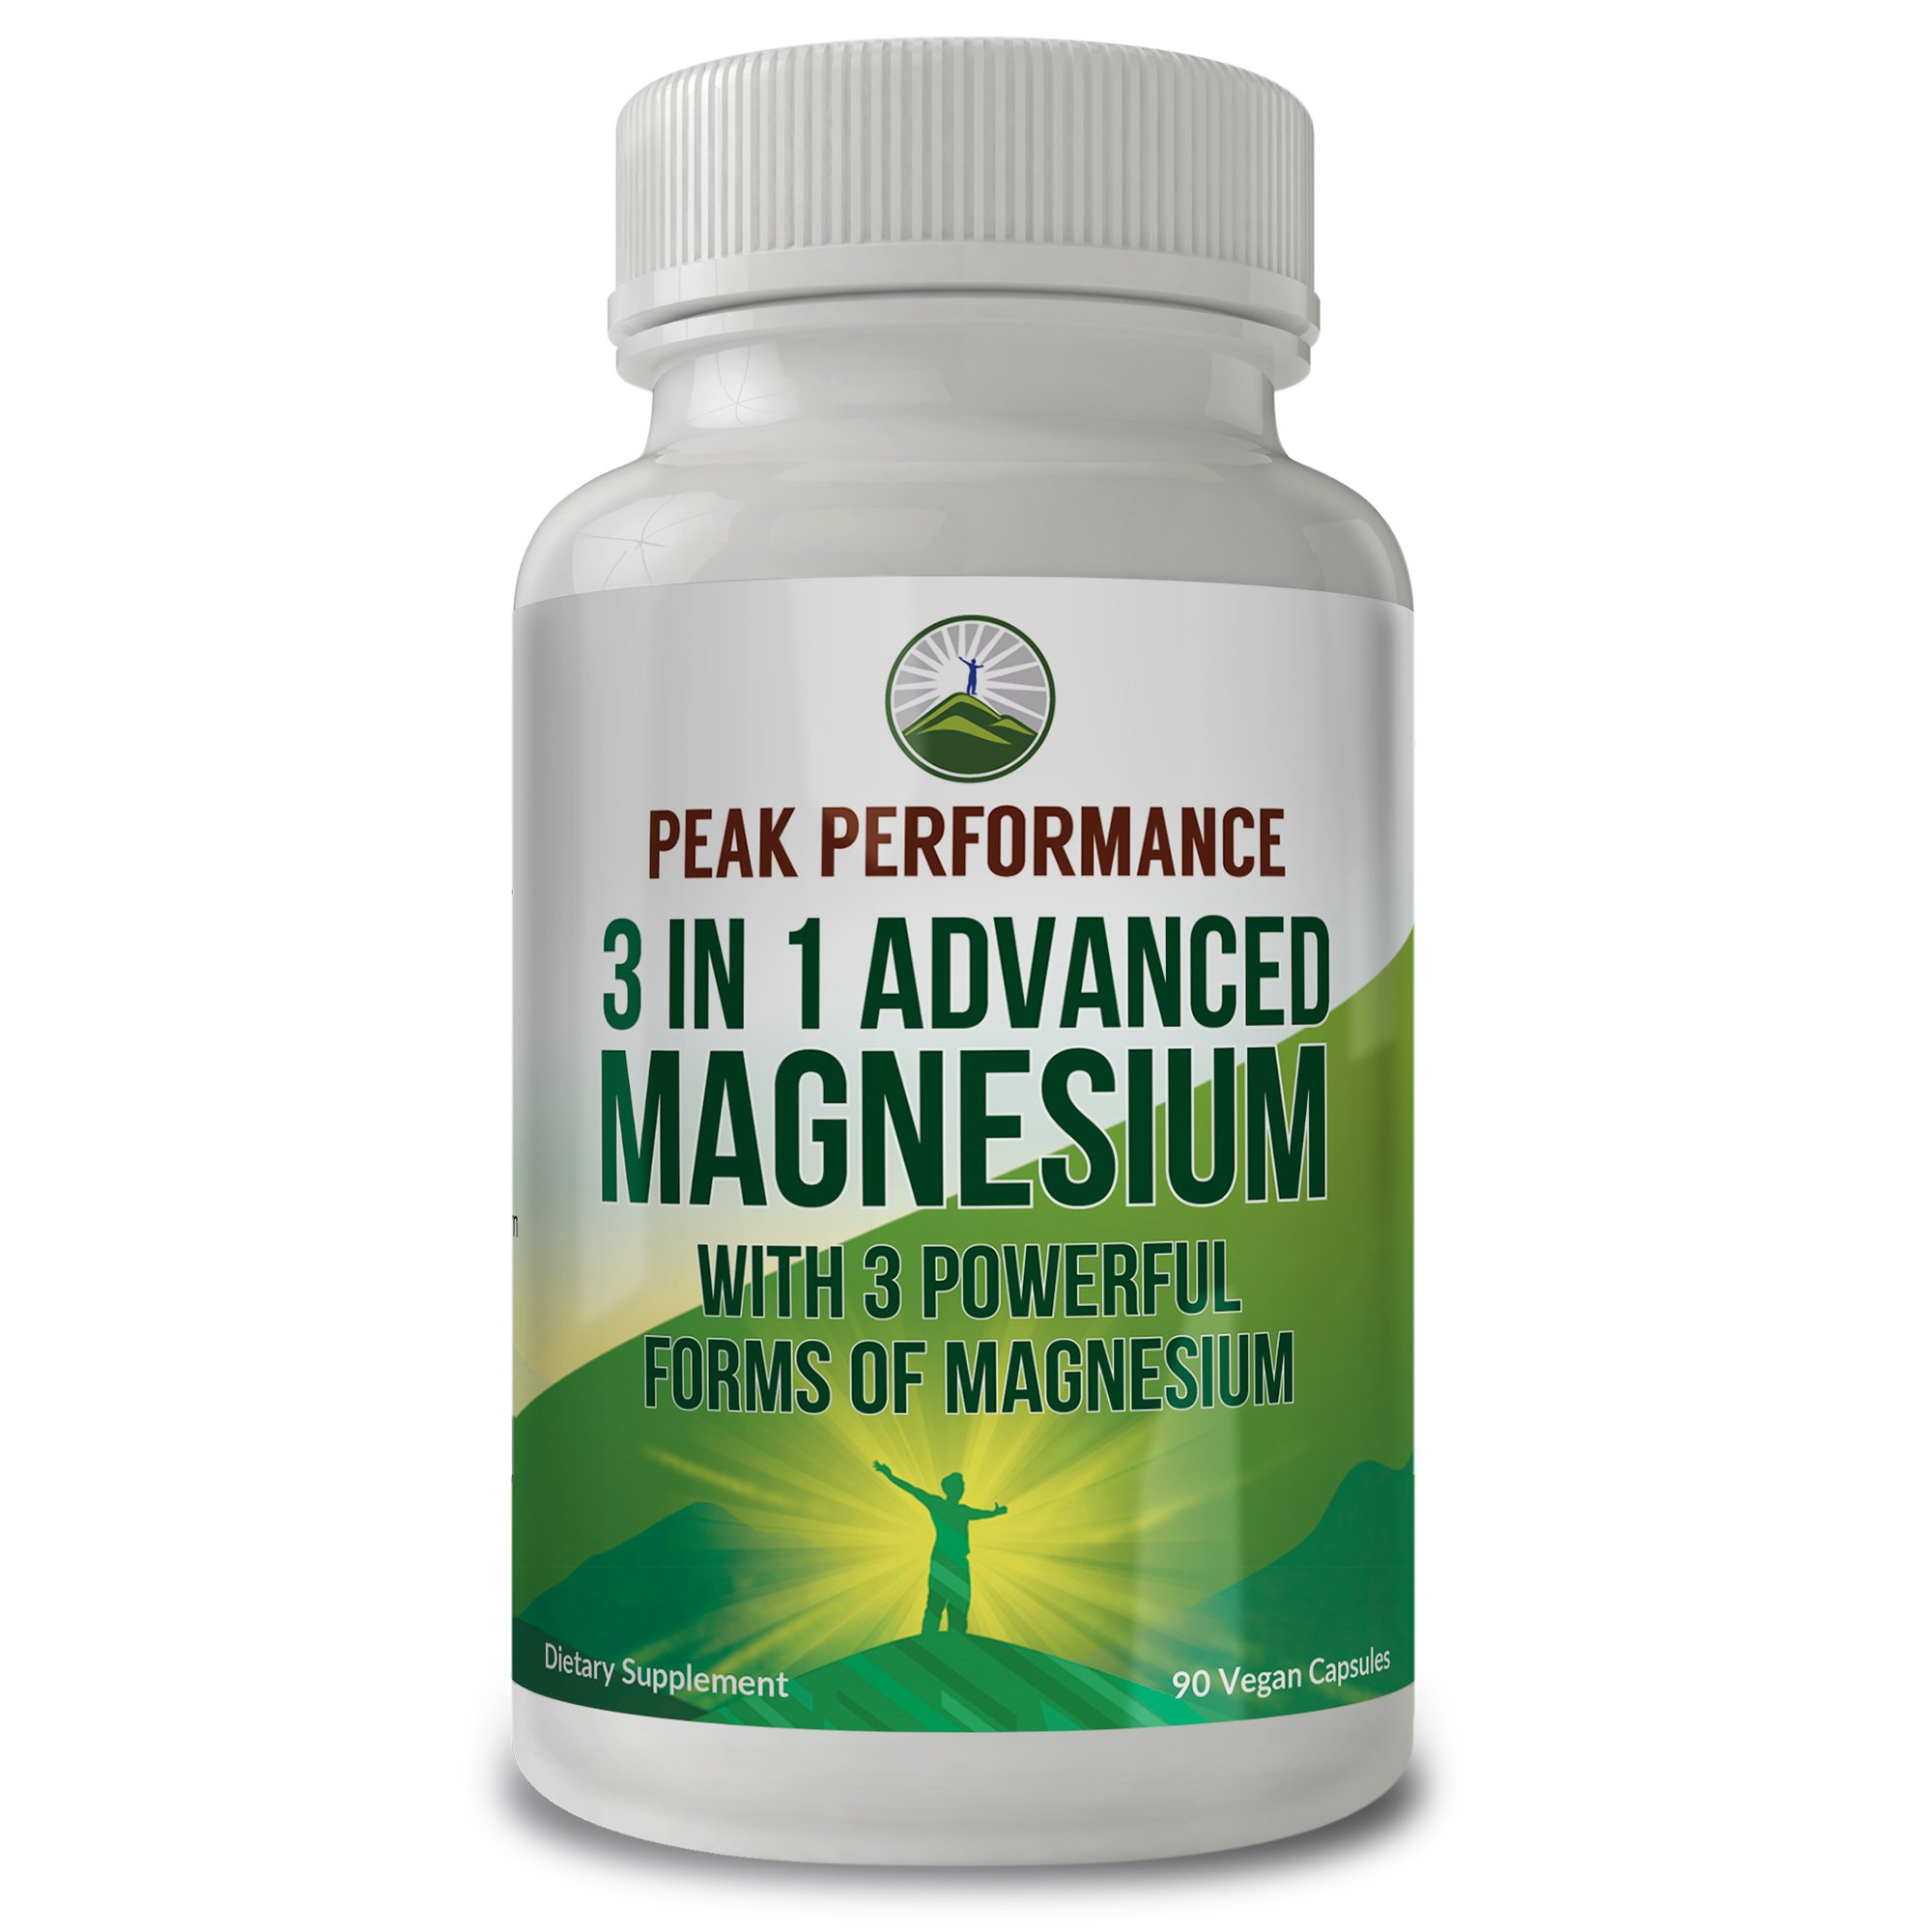 3 In 1 ADVANCED MAGNESIUM COMPLEX By Peak Performance. High Level of Absorbability and Bioavailability. 3 of the BEST Magnesiums in ONE - Magnesium L-Threonate, Magnesium Glycinate (1 pack)